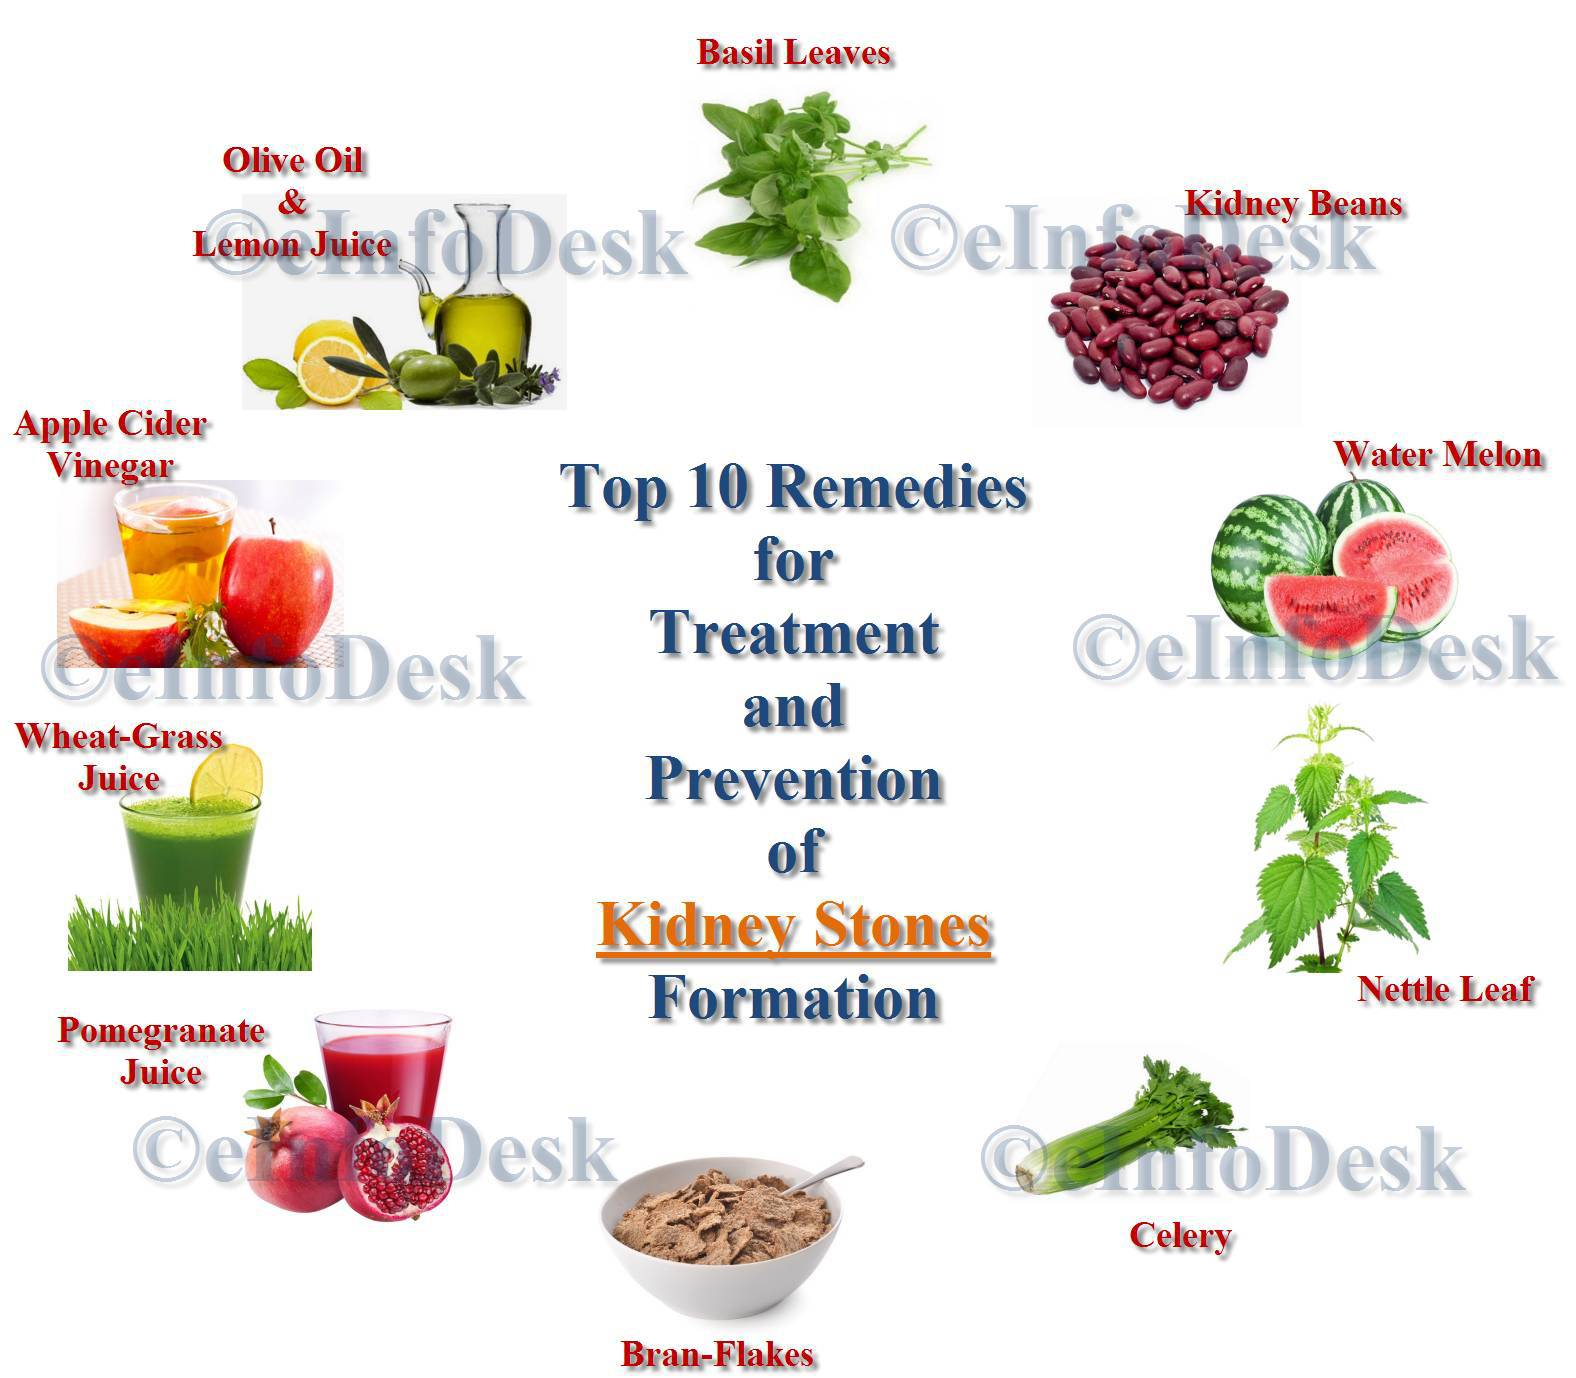 Flush Out Kidney Stones Naturally Einfodesk